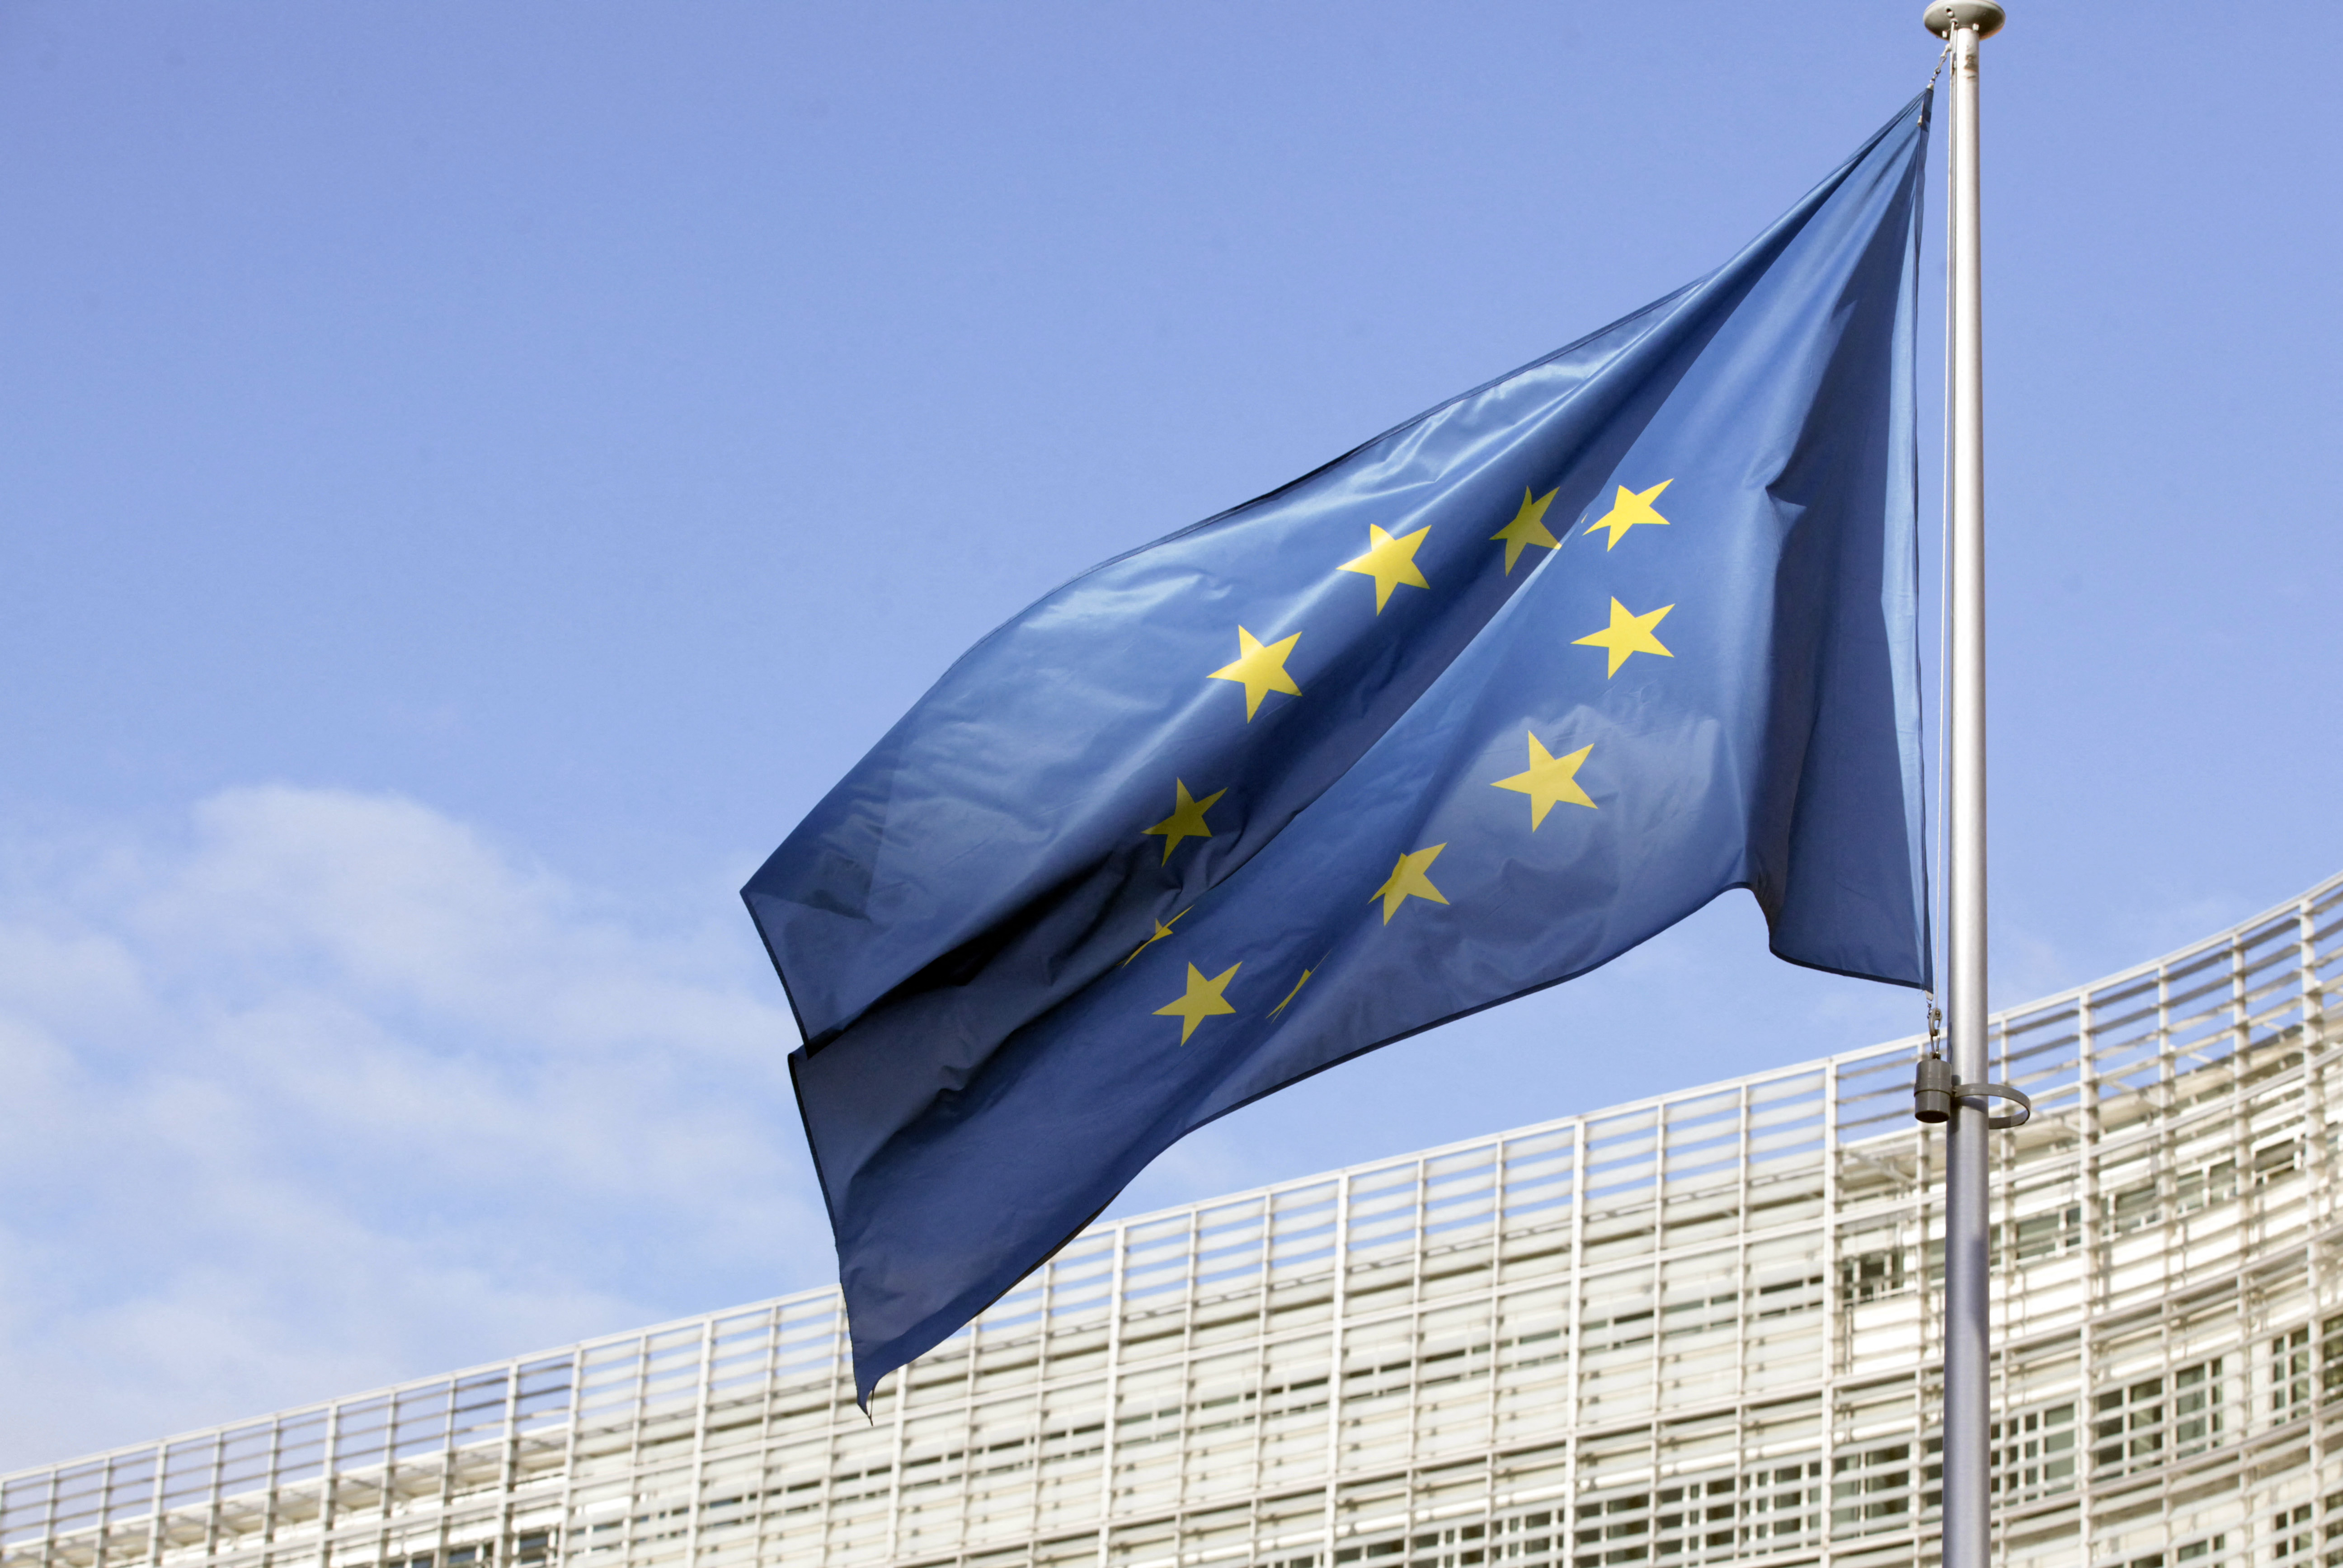 Six EU countries warned over border restrictions